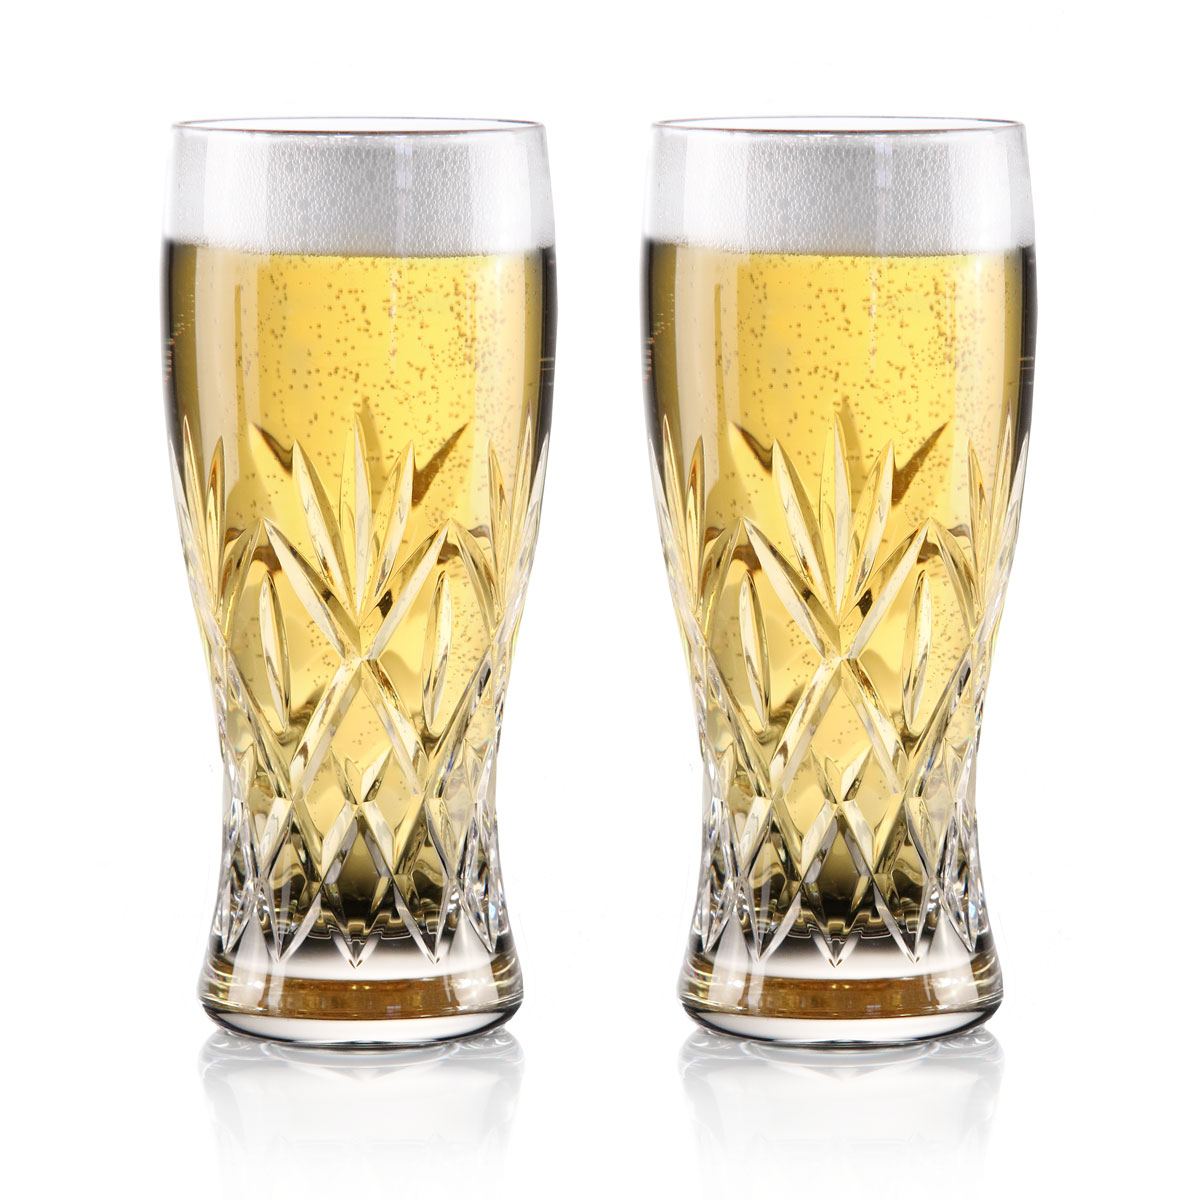 Waterford Crystal Huntley Pint Beer Glasses, Pair